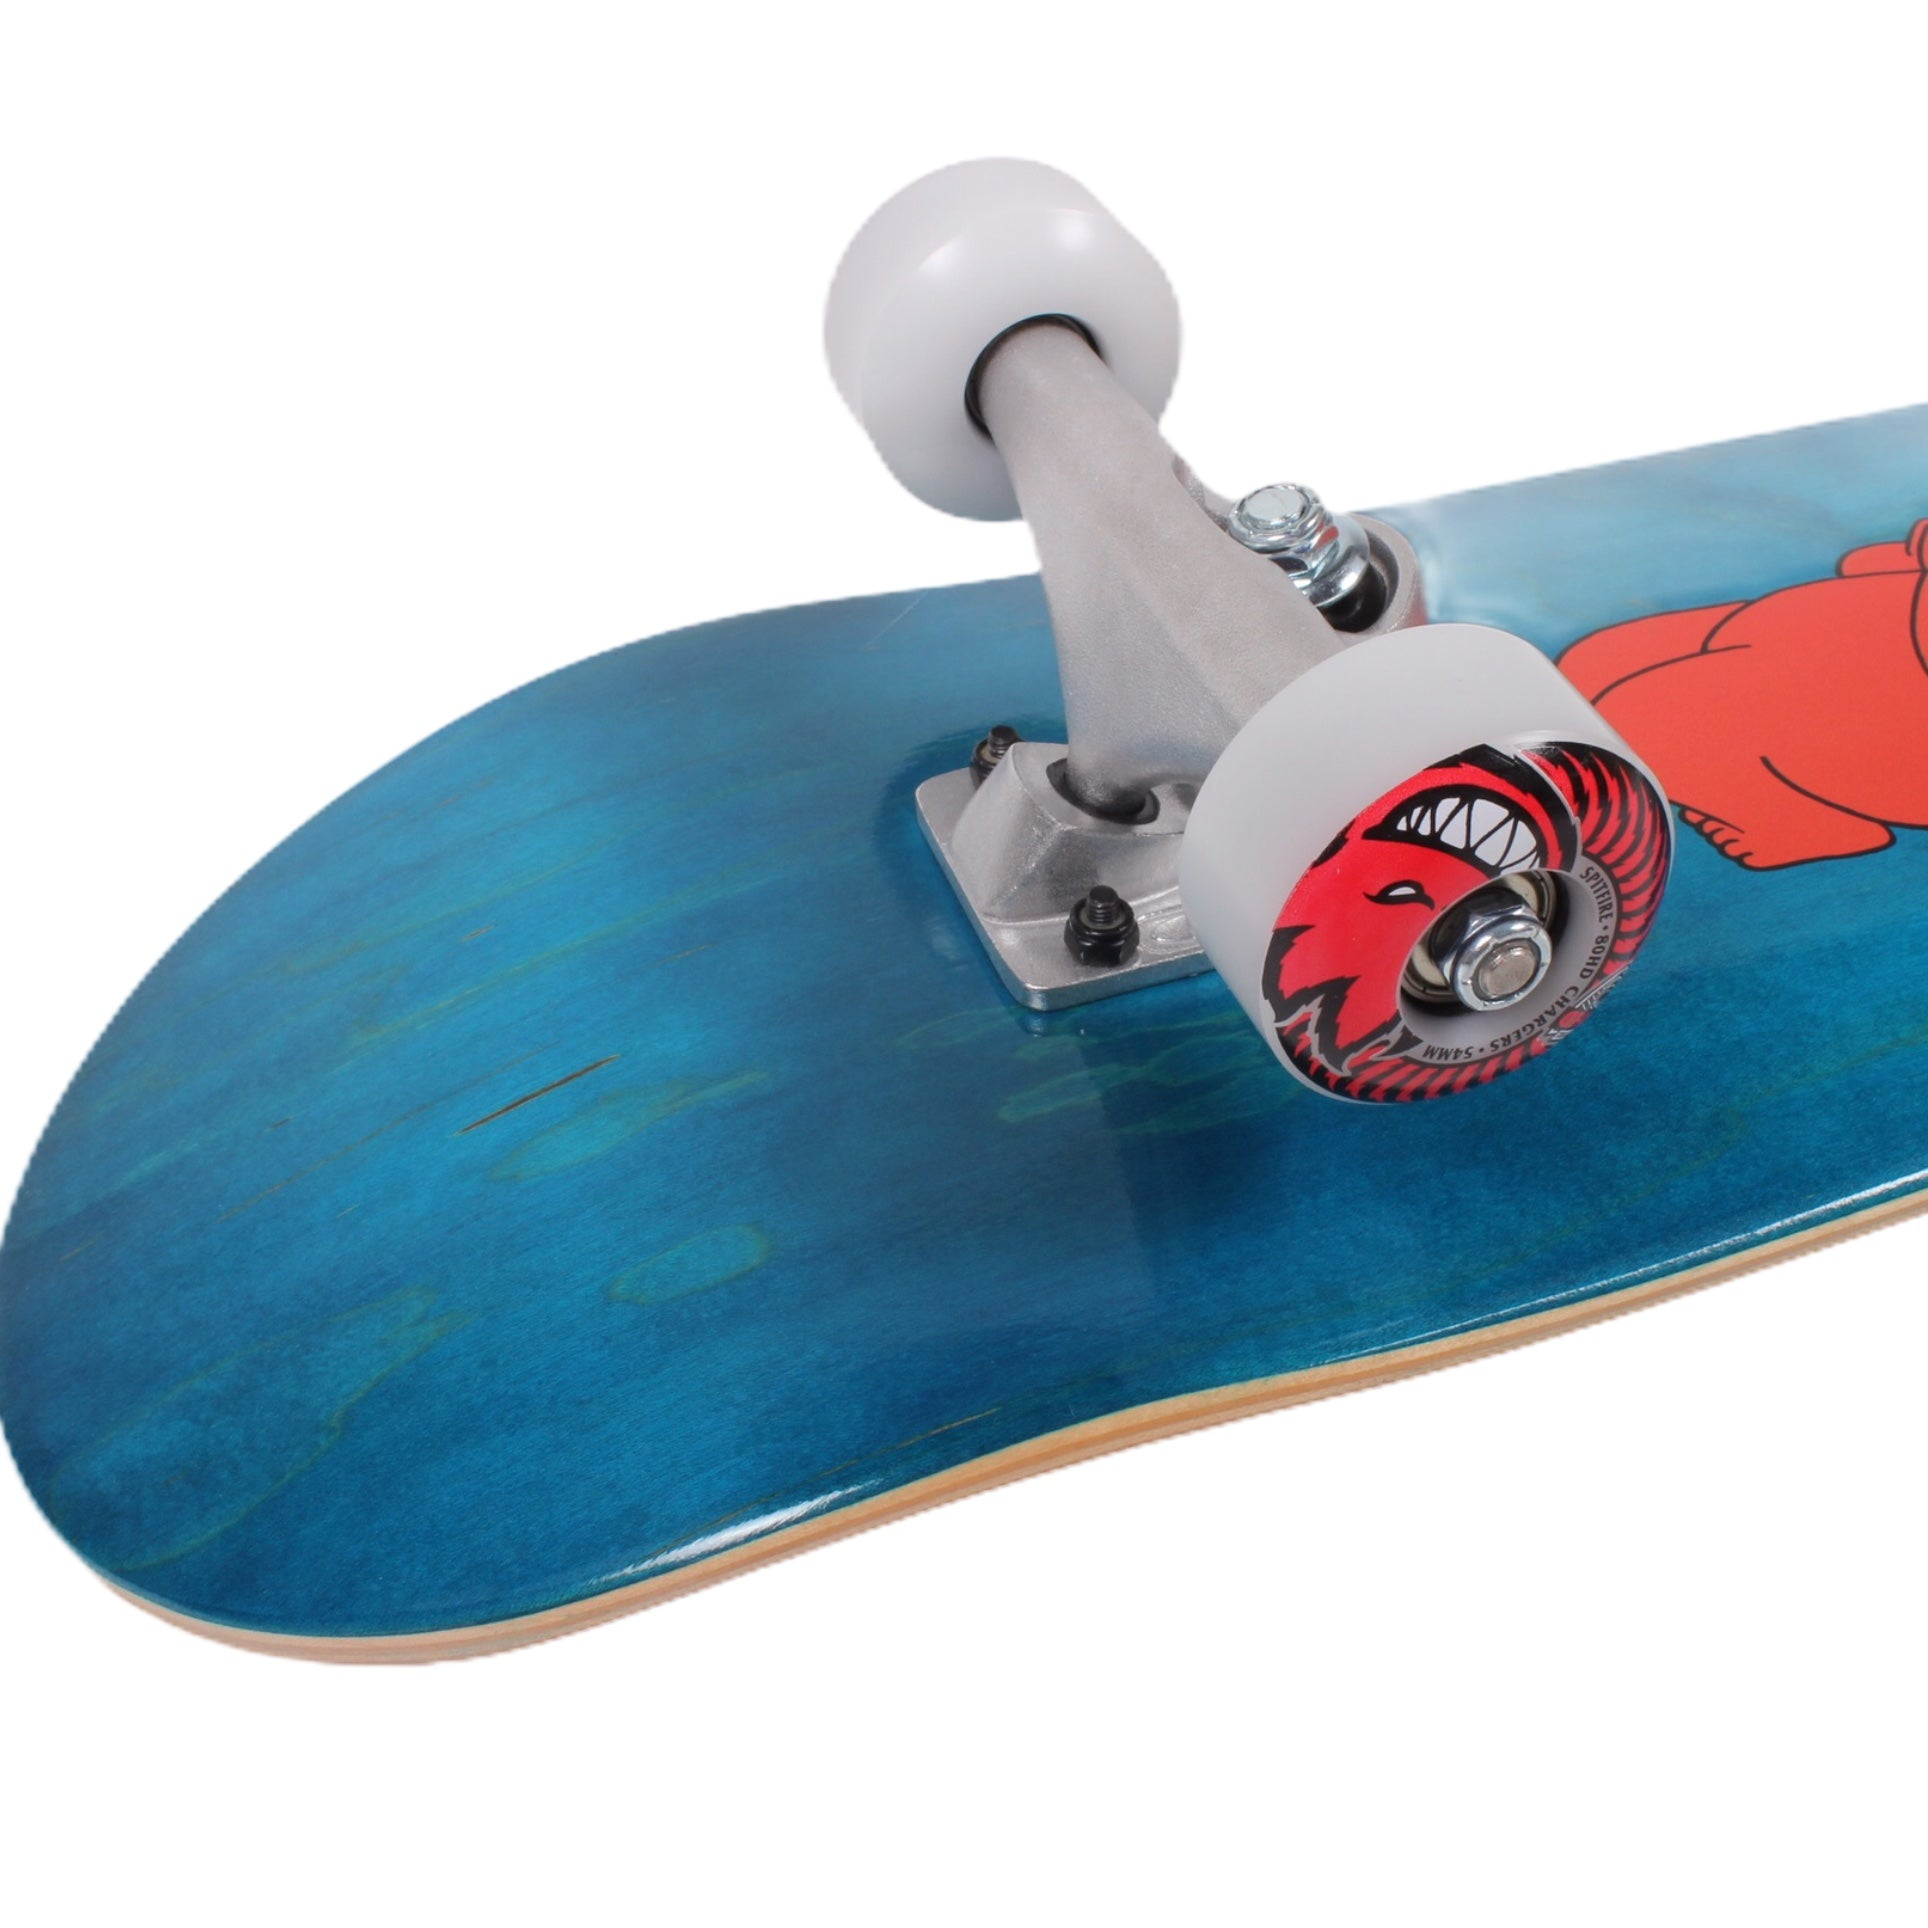 Orchard Thoughts & Prayers Complete Skateboard Hybrid 7.5 Blue